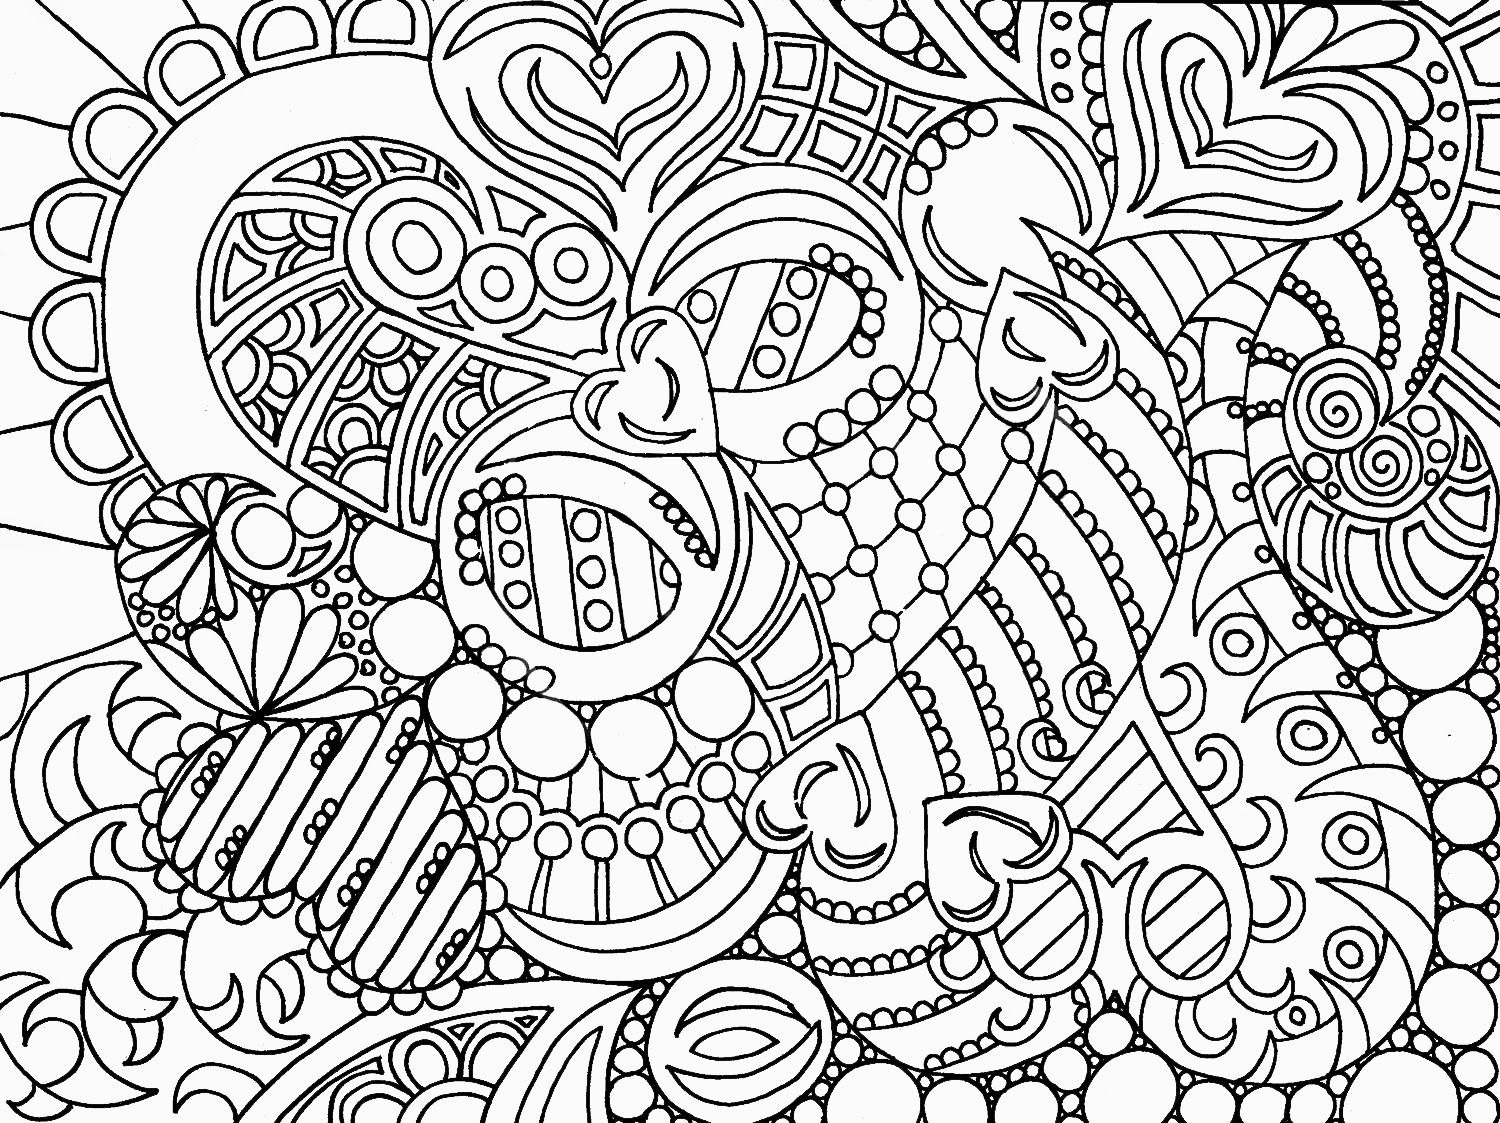 Coloring pages you can print